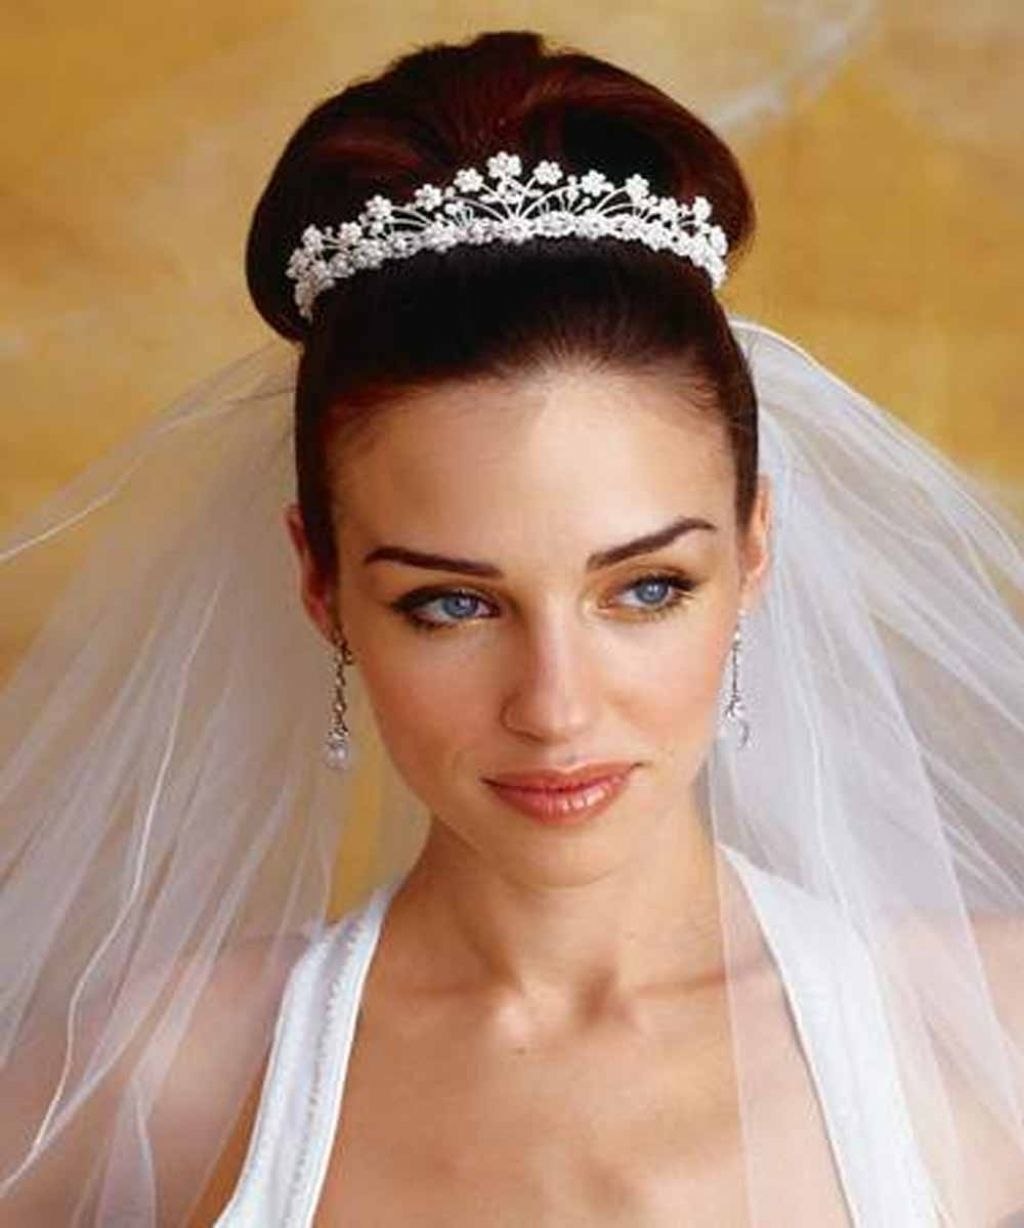 Wedding Hairstyles Long Hair With Veil – Popular Long Hairstyle Idea With Wedding Updo Hairstyles With Veil (View 9 of 15)